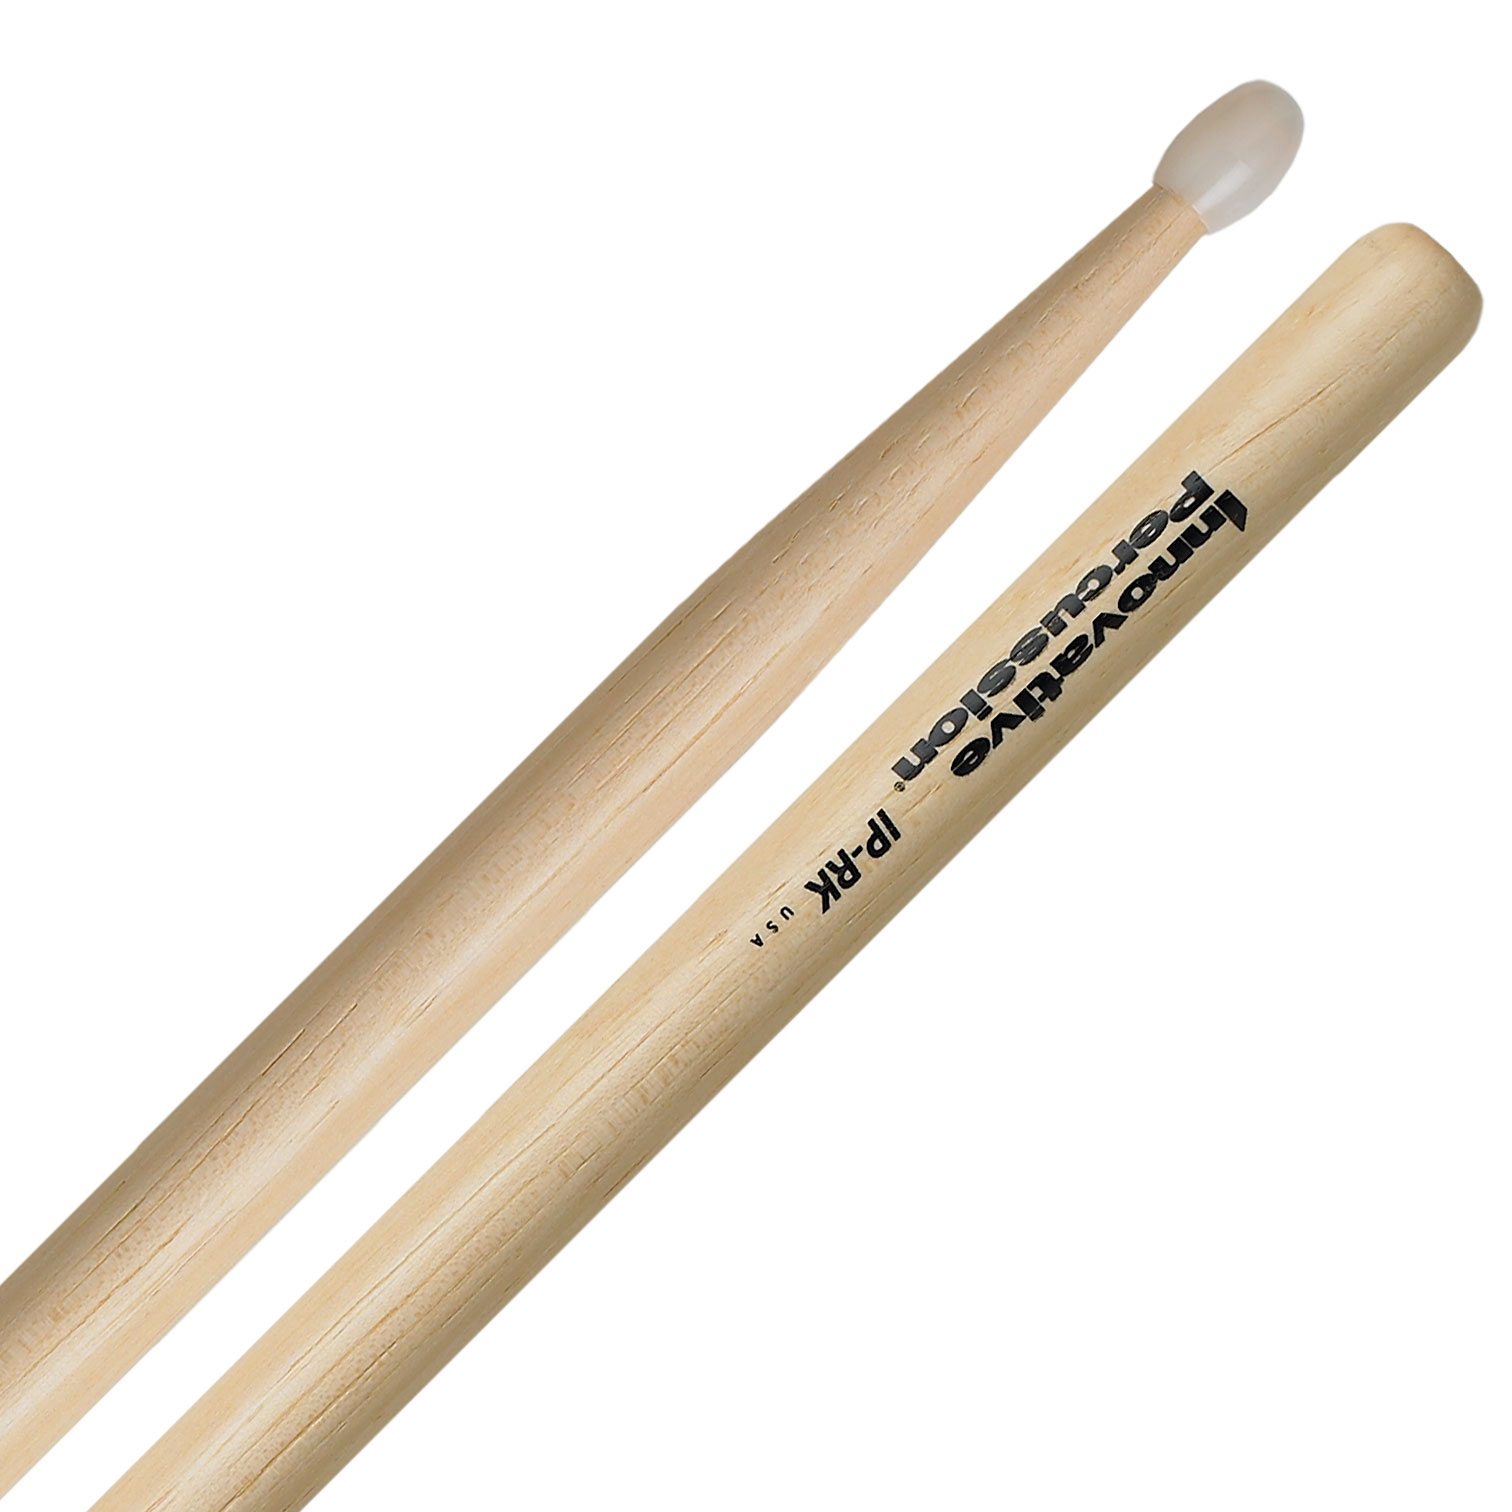 Innovative Percussion Rock Nylon Tip Drumsticks